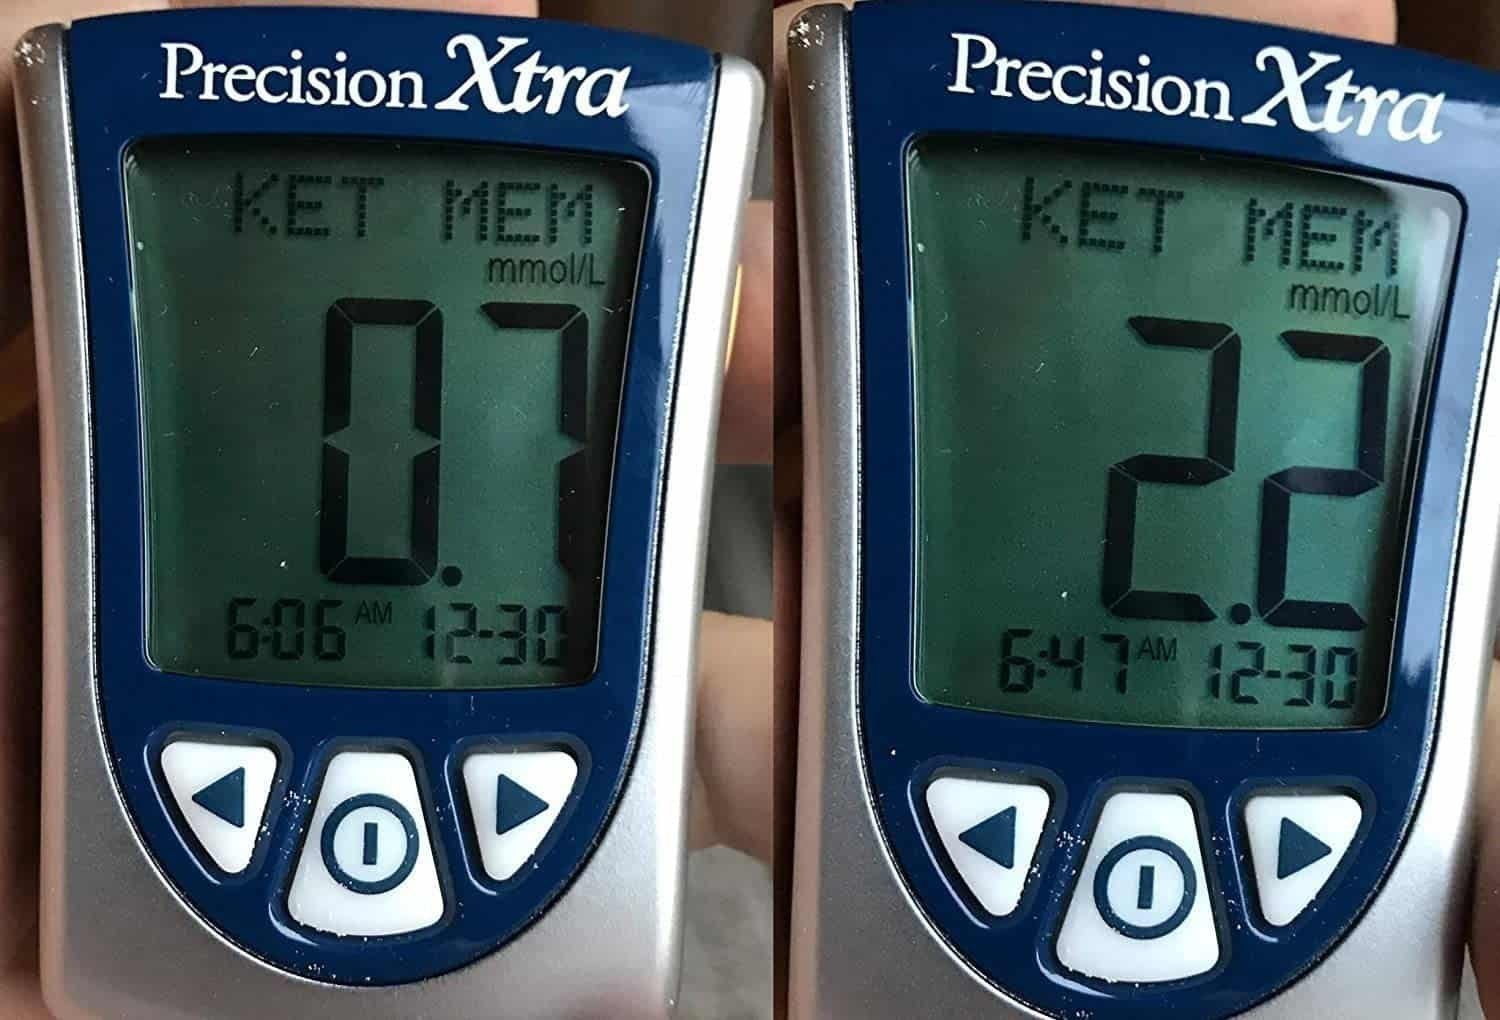 Within 30 minutes it can increase measurable blood ketone level up to 2 points+